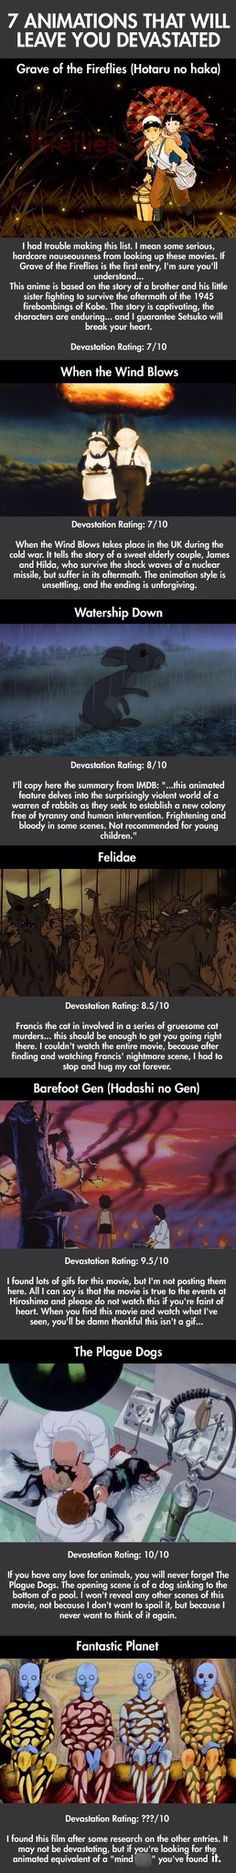 Neo-Noir, Animated Adventure Drama. I still love Watership Down. I fondly remember it as a child and the book is a classic read! It never scared me, I always viewed it as art. The rest here...not so much. Especially Grave of Fireflies and When the Wind Blows. They are unspeakably tragic. Richard Adams authored The Plague Dogs. Sad book.